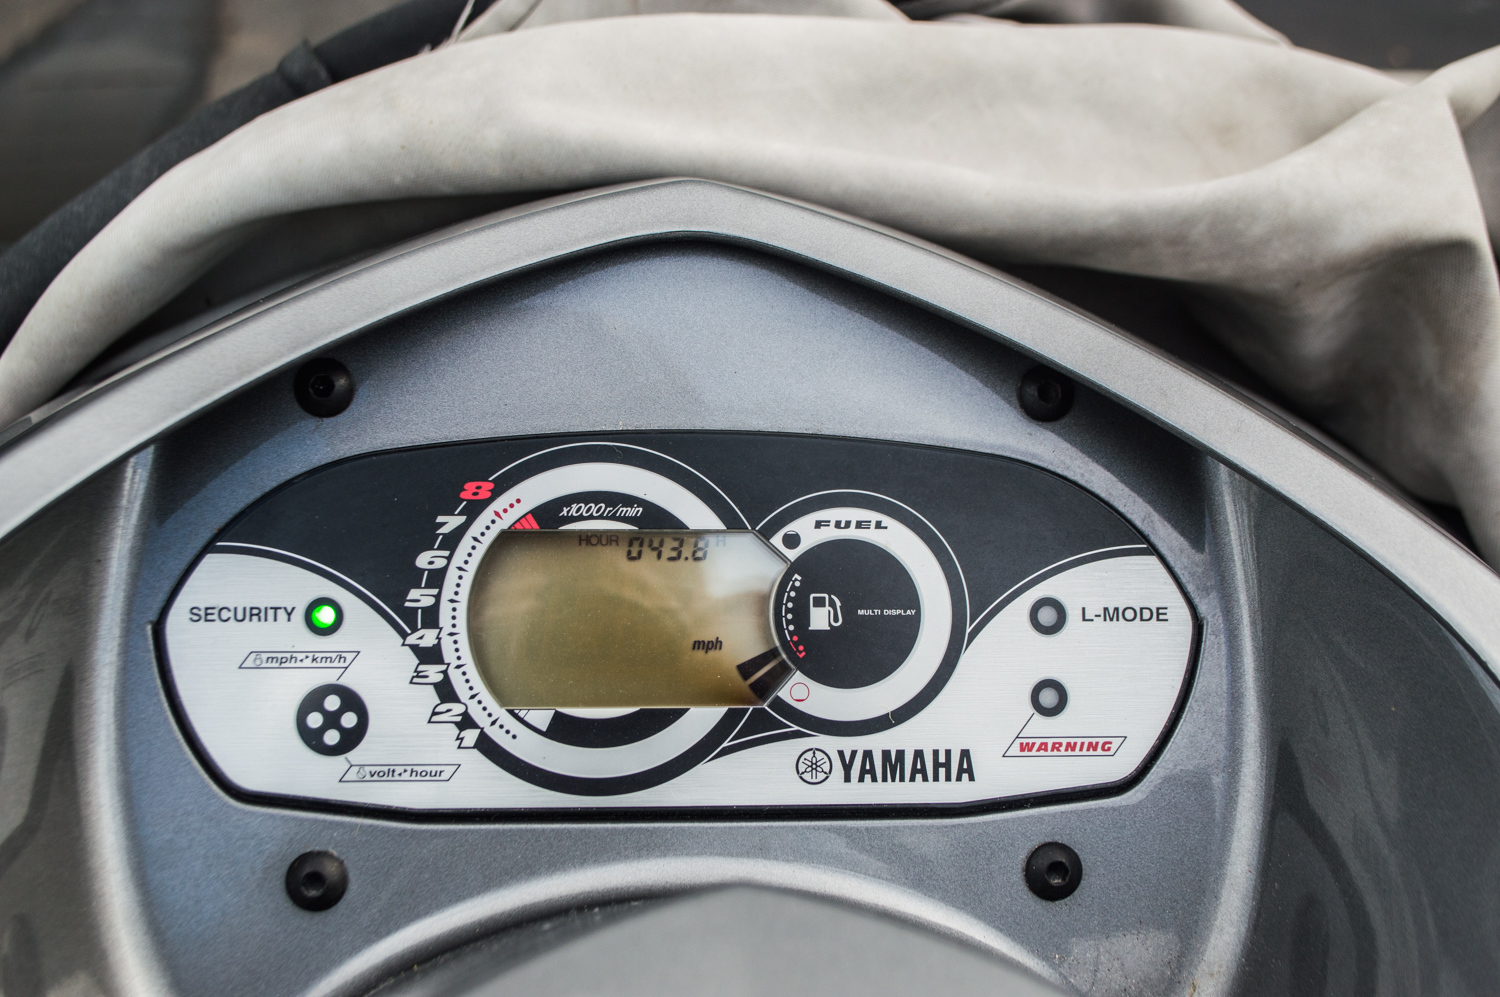 Thumbnail 11 for Used 2007 Yamaha VX Cruiser boat for sale in West Palm Beach, FL